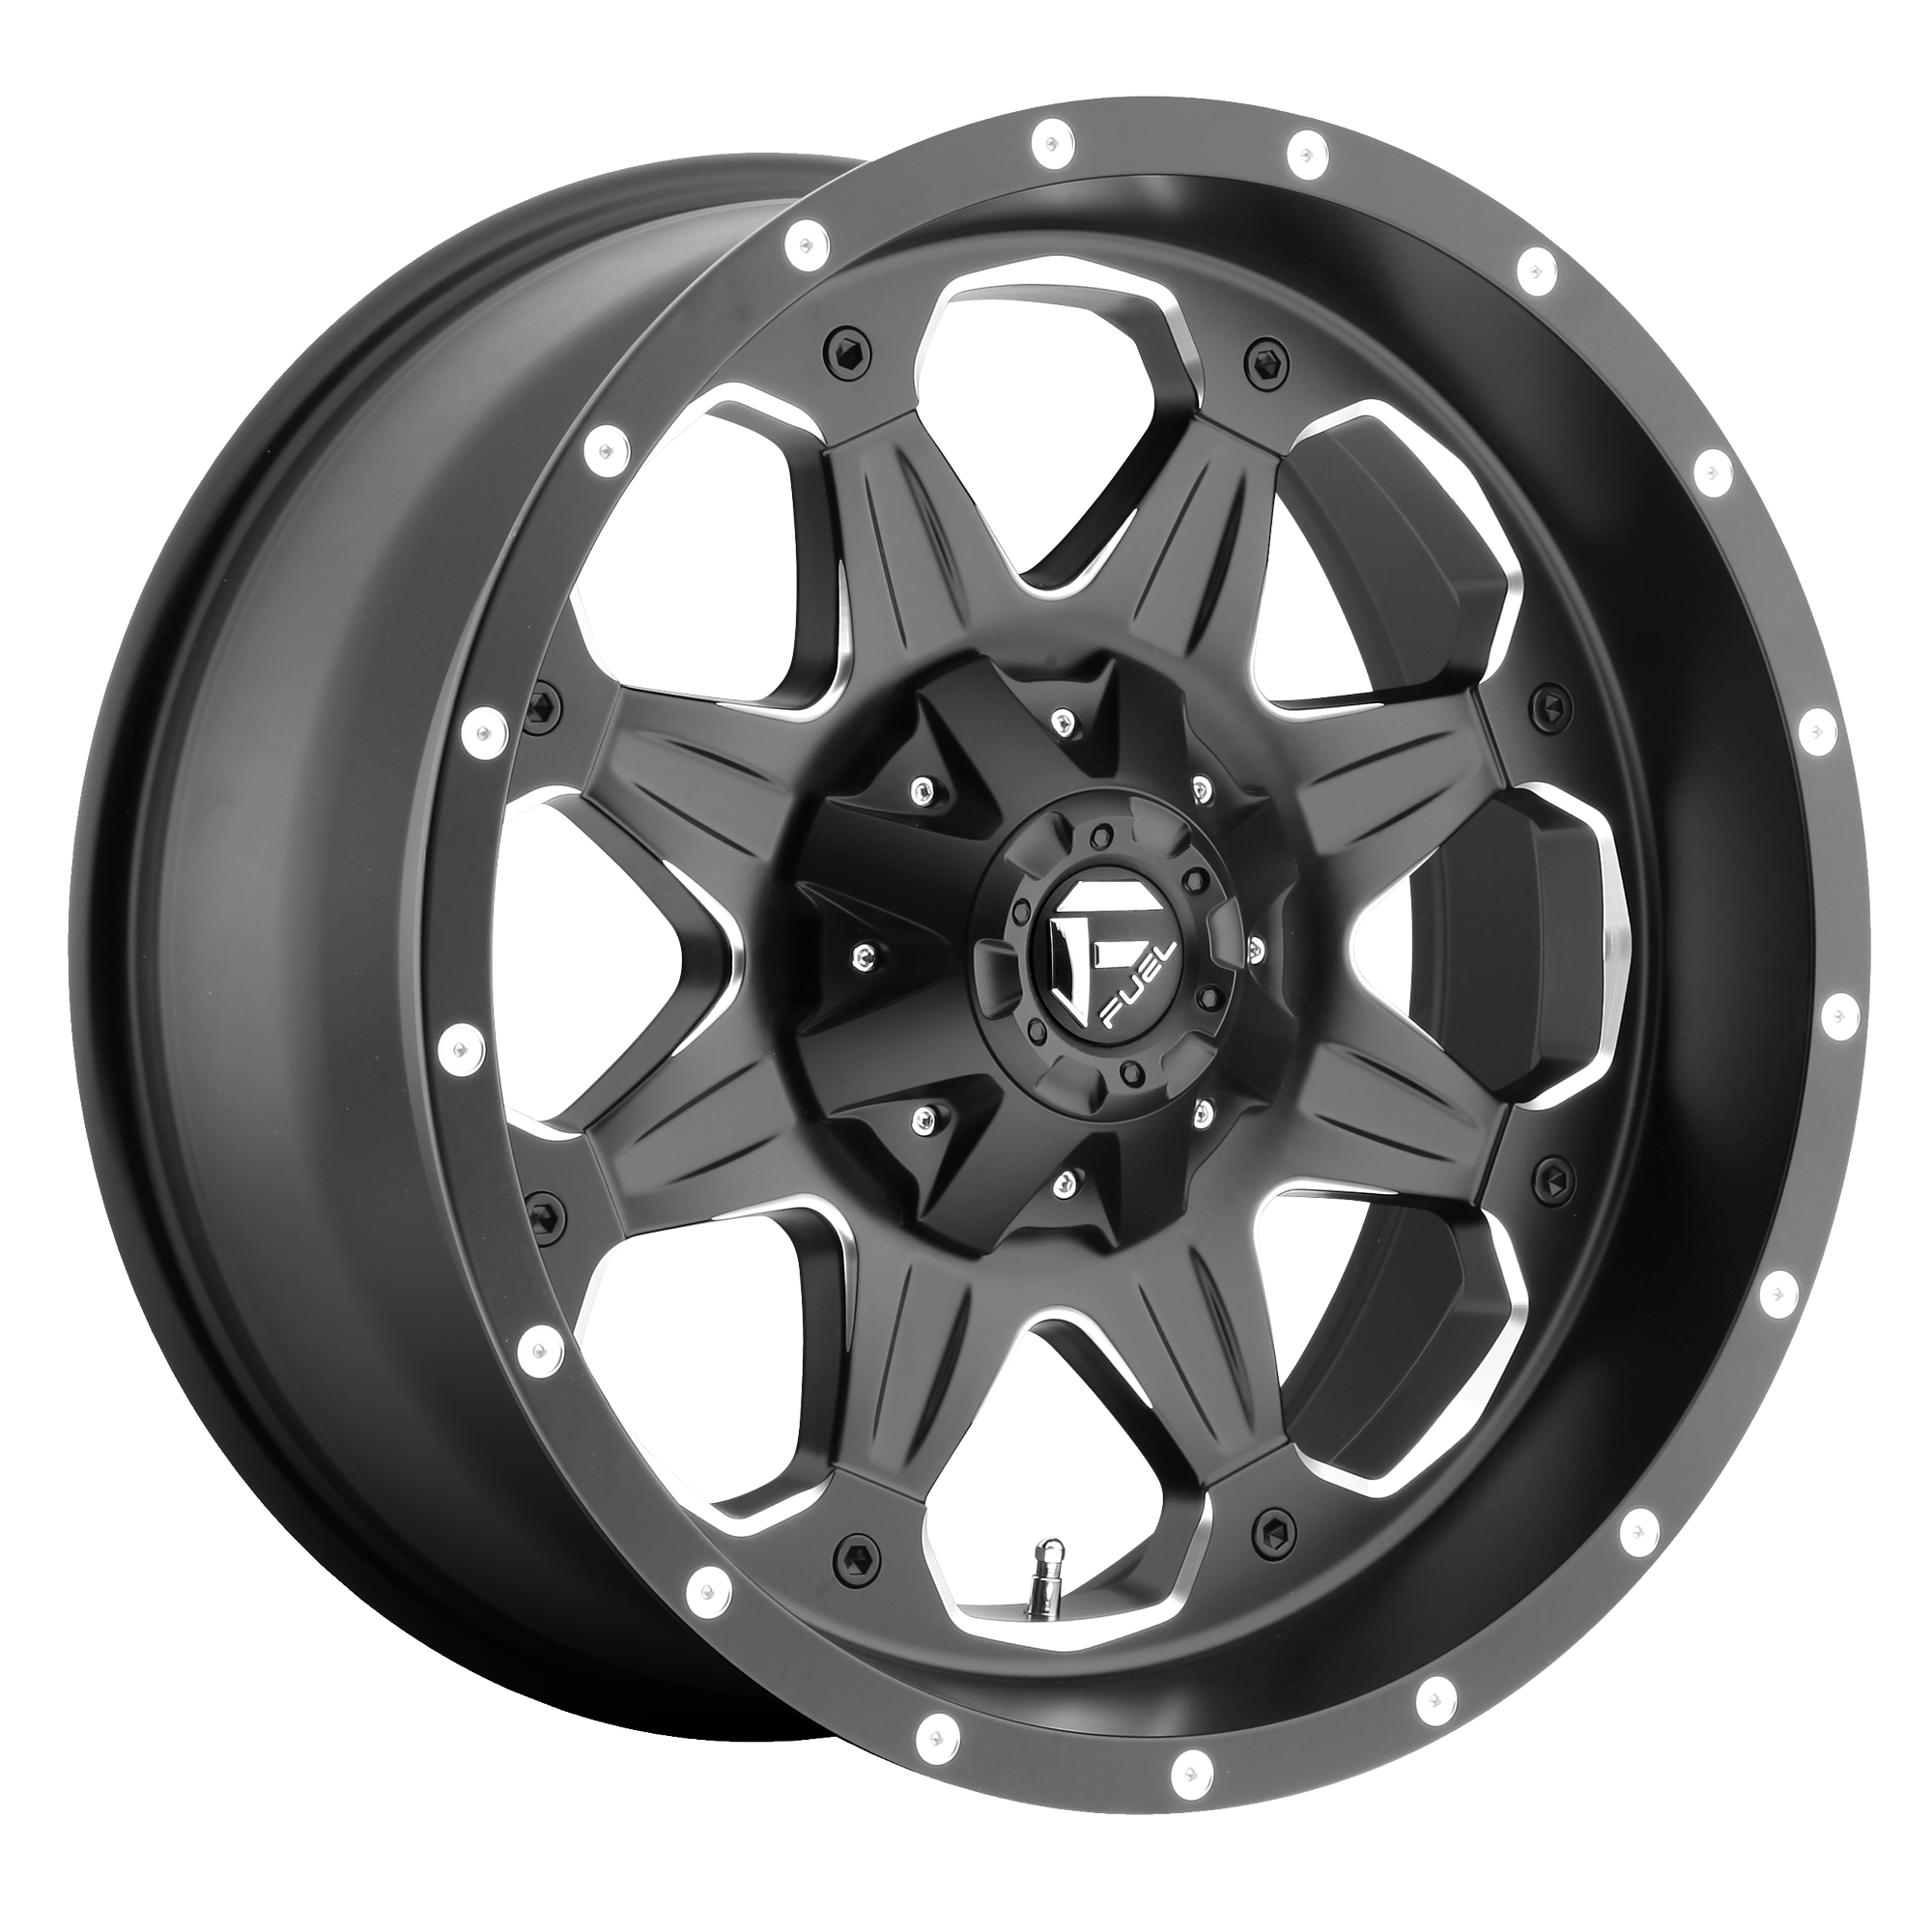 18x9 Boost 5x4.5 - 5/5  +1MM Offset